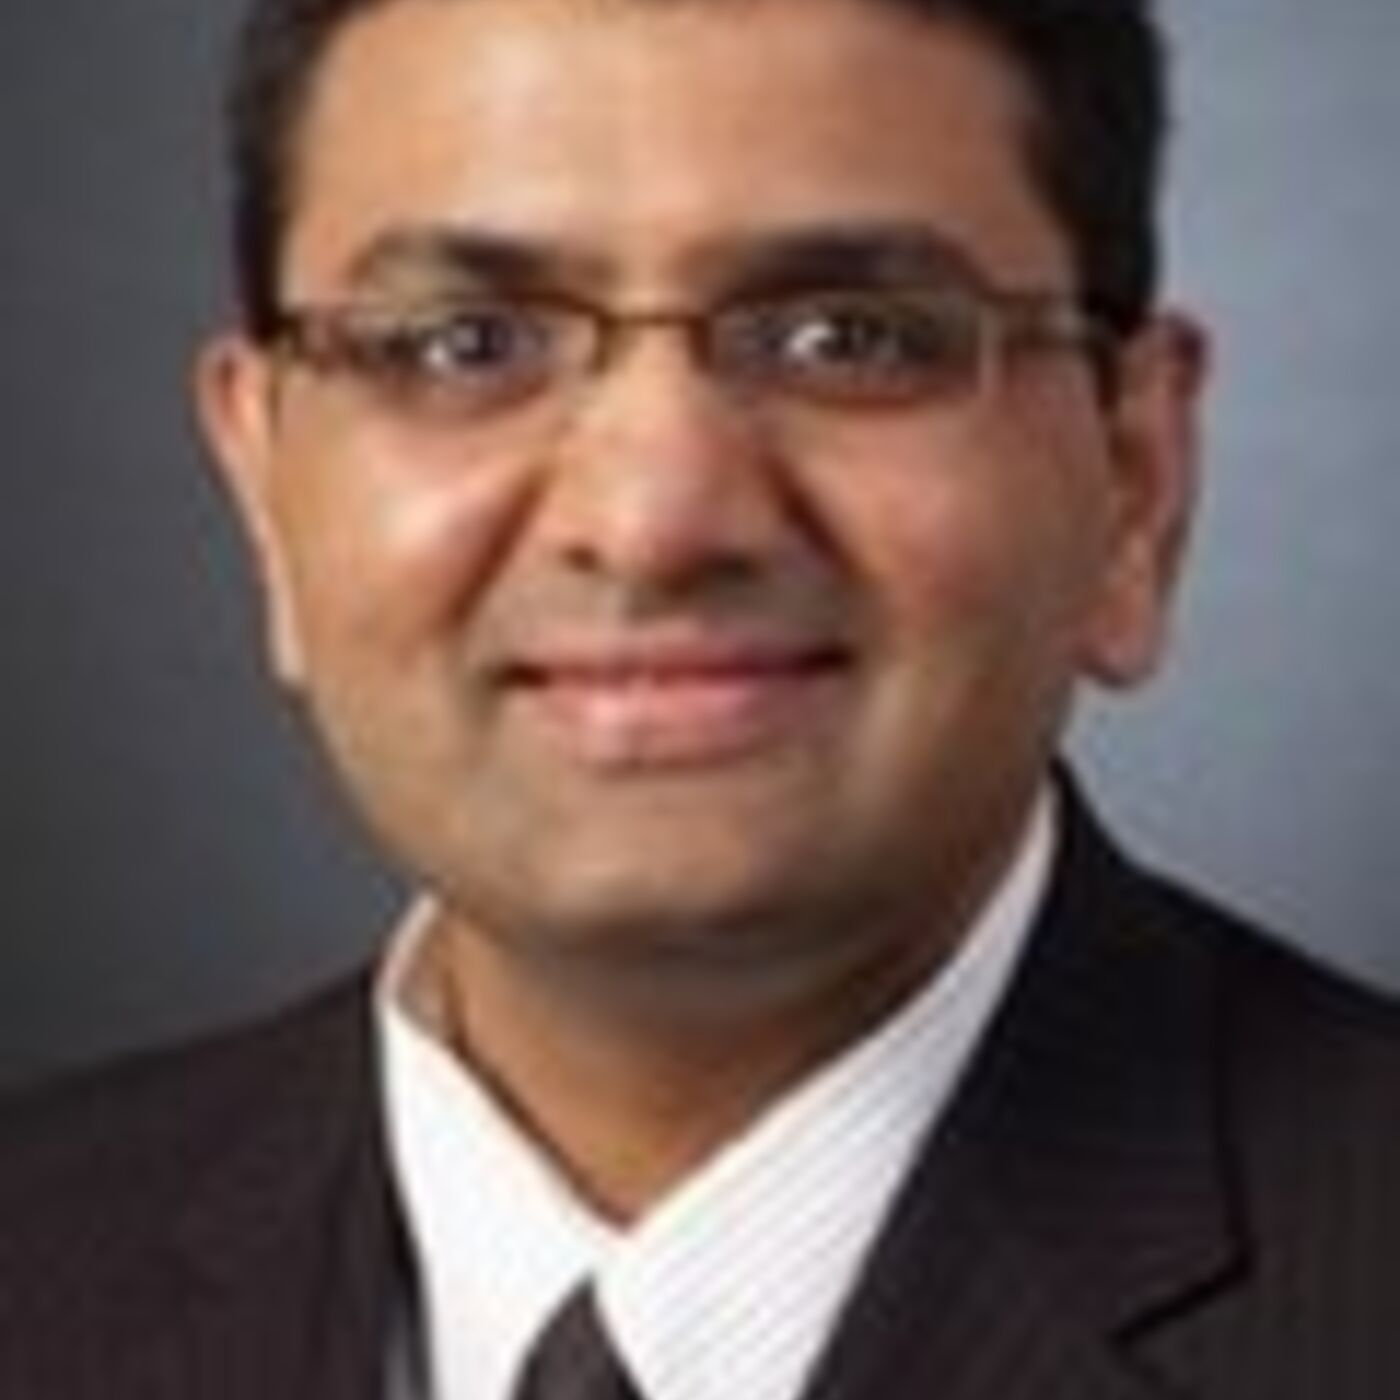 Oncology/Hematology and Rural Medicine with Dr. Anush Patel